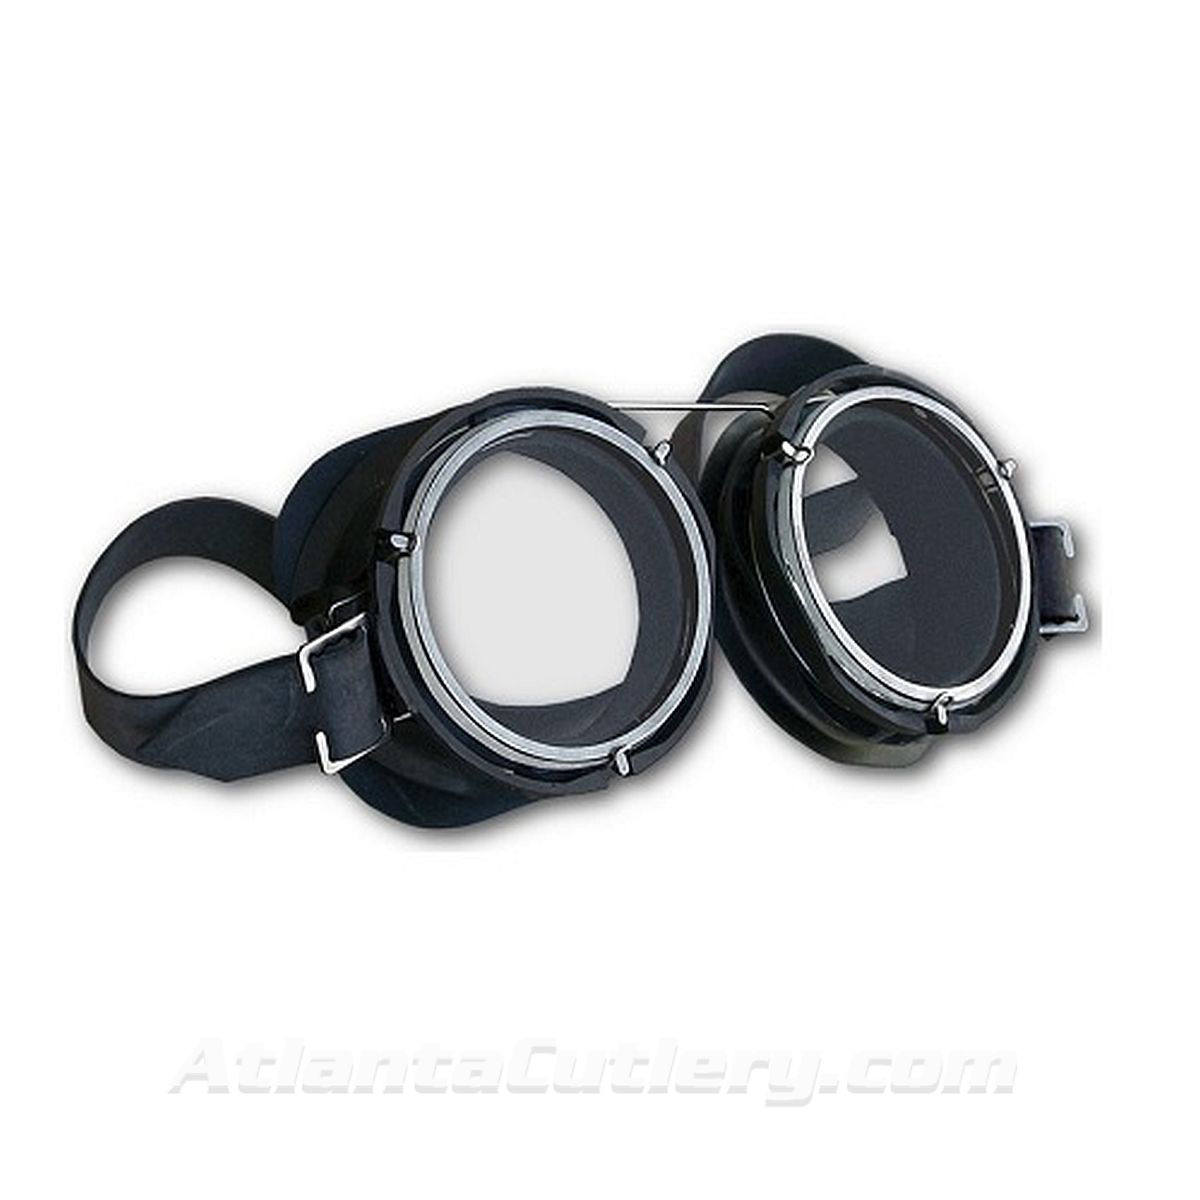 WWI Flying Ace Goggles have black plastic & wire frames, black rubber cups, and clear lenses with an adjustable rubber strap